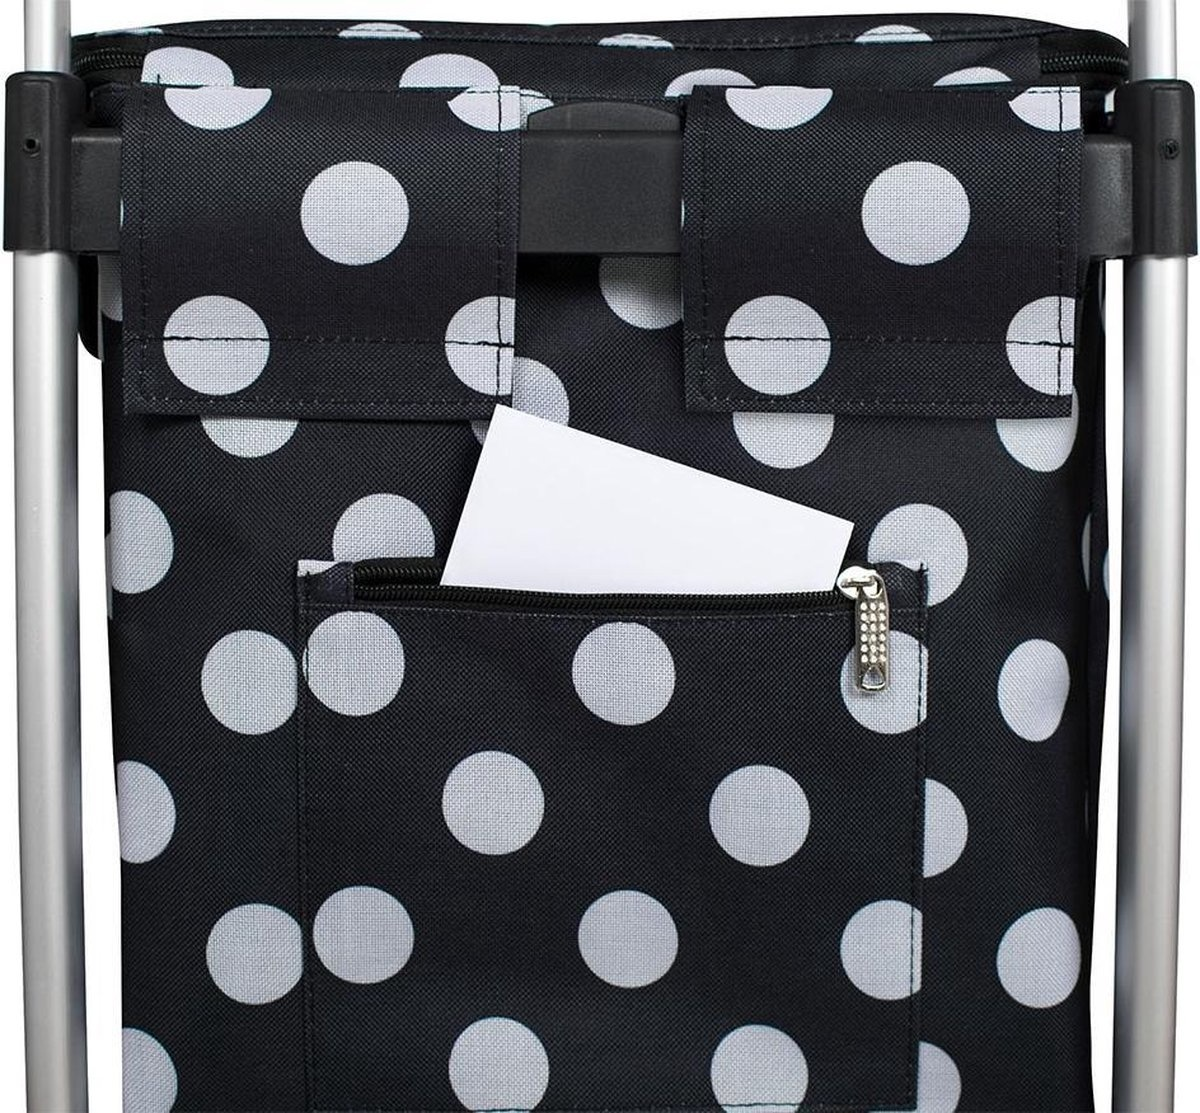 Bamex Bamex Chicago Boodschappentrolley Black Dots met grote opening